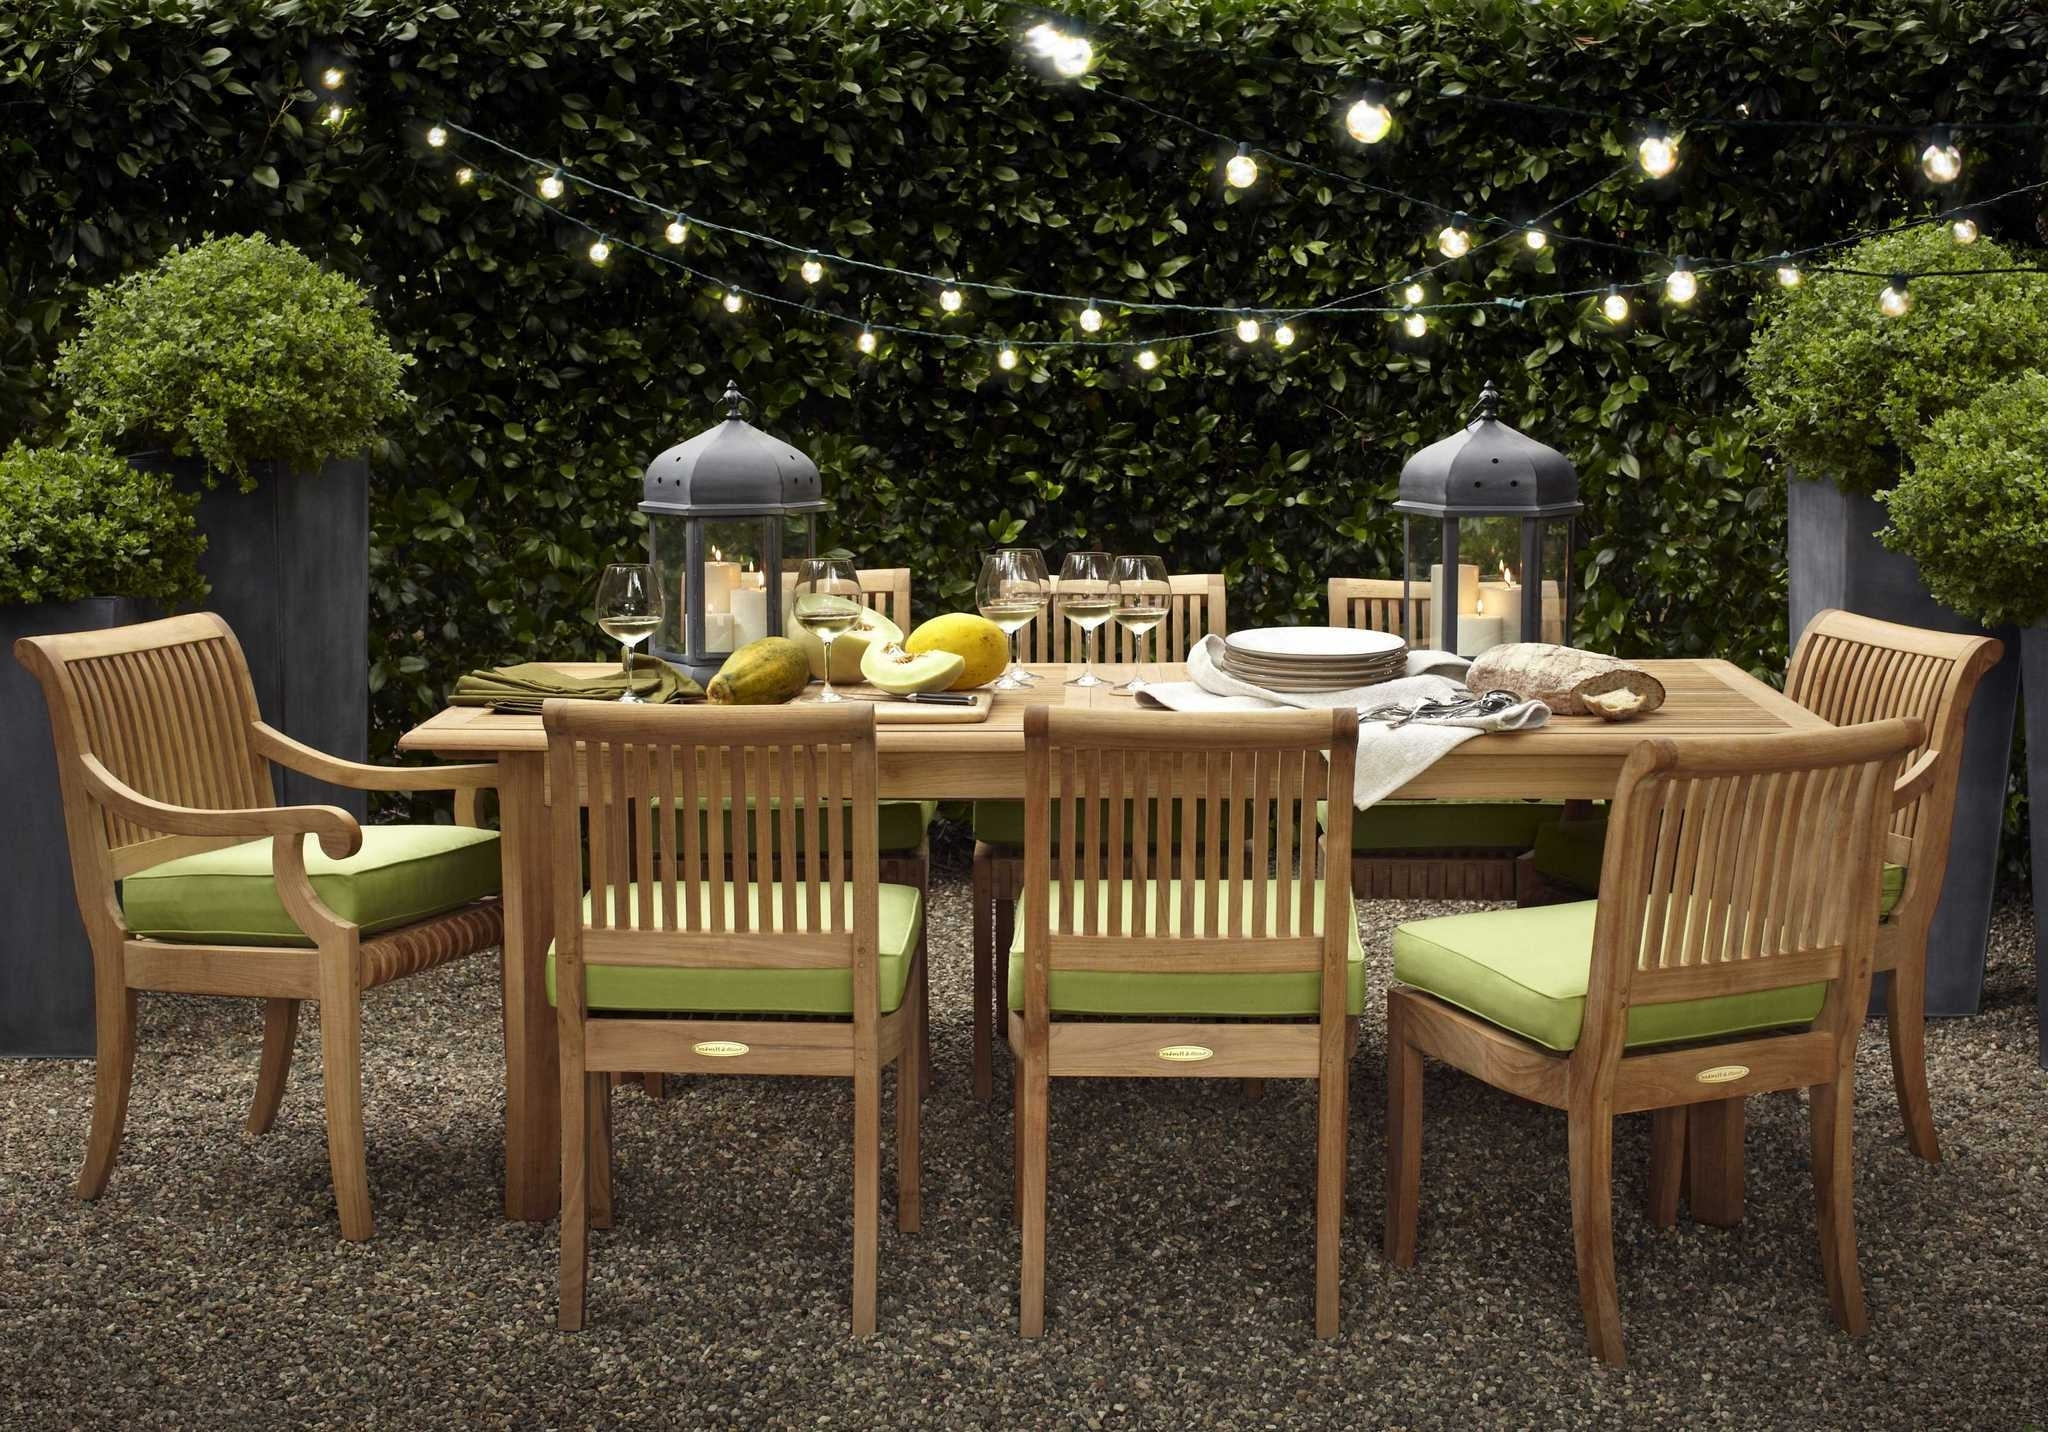 Porch Lighting Ranch Style Landscape Light Kits Ideas Backyard Within Favorite Outdoor Dining Lanterns (View 11 of 20)